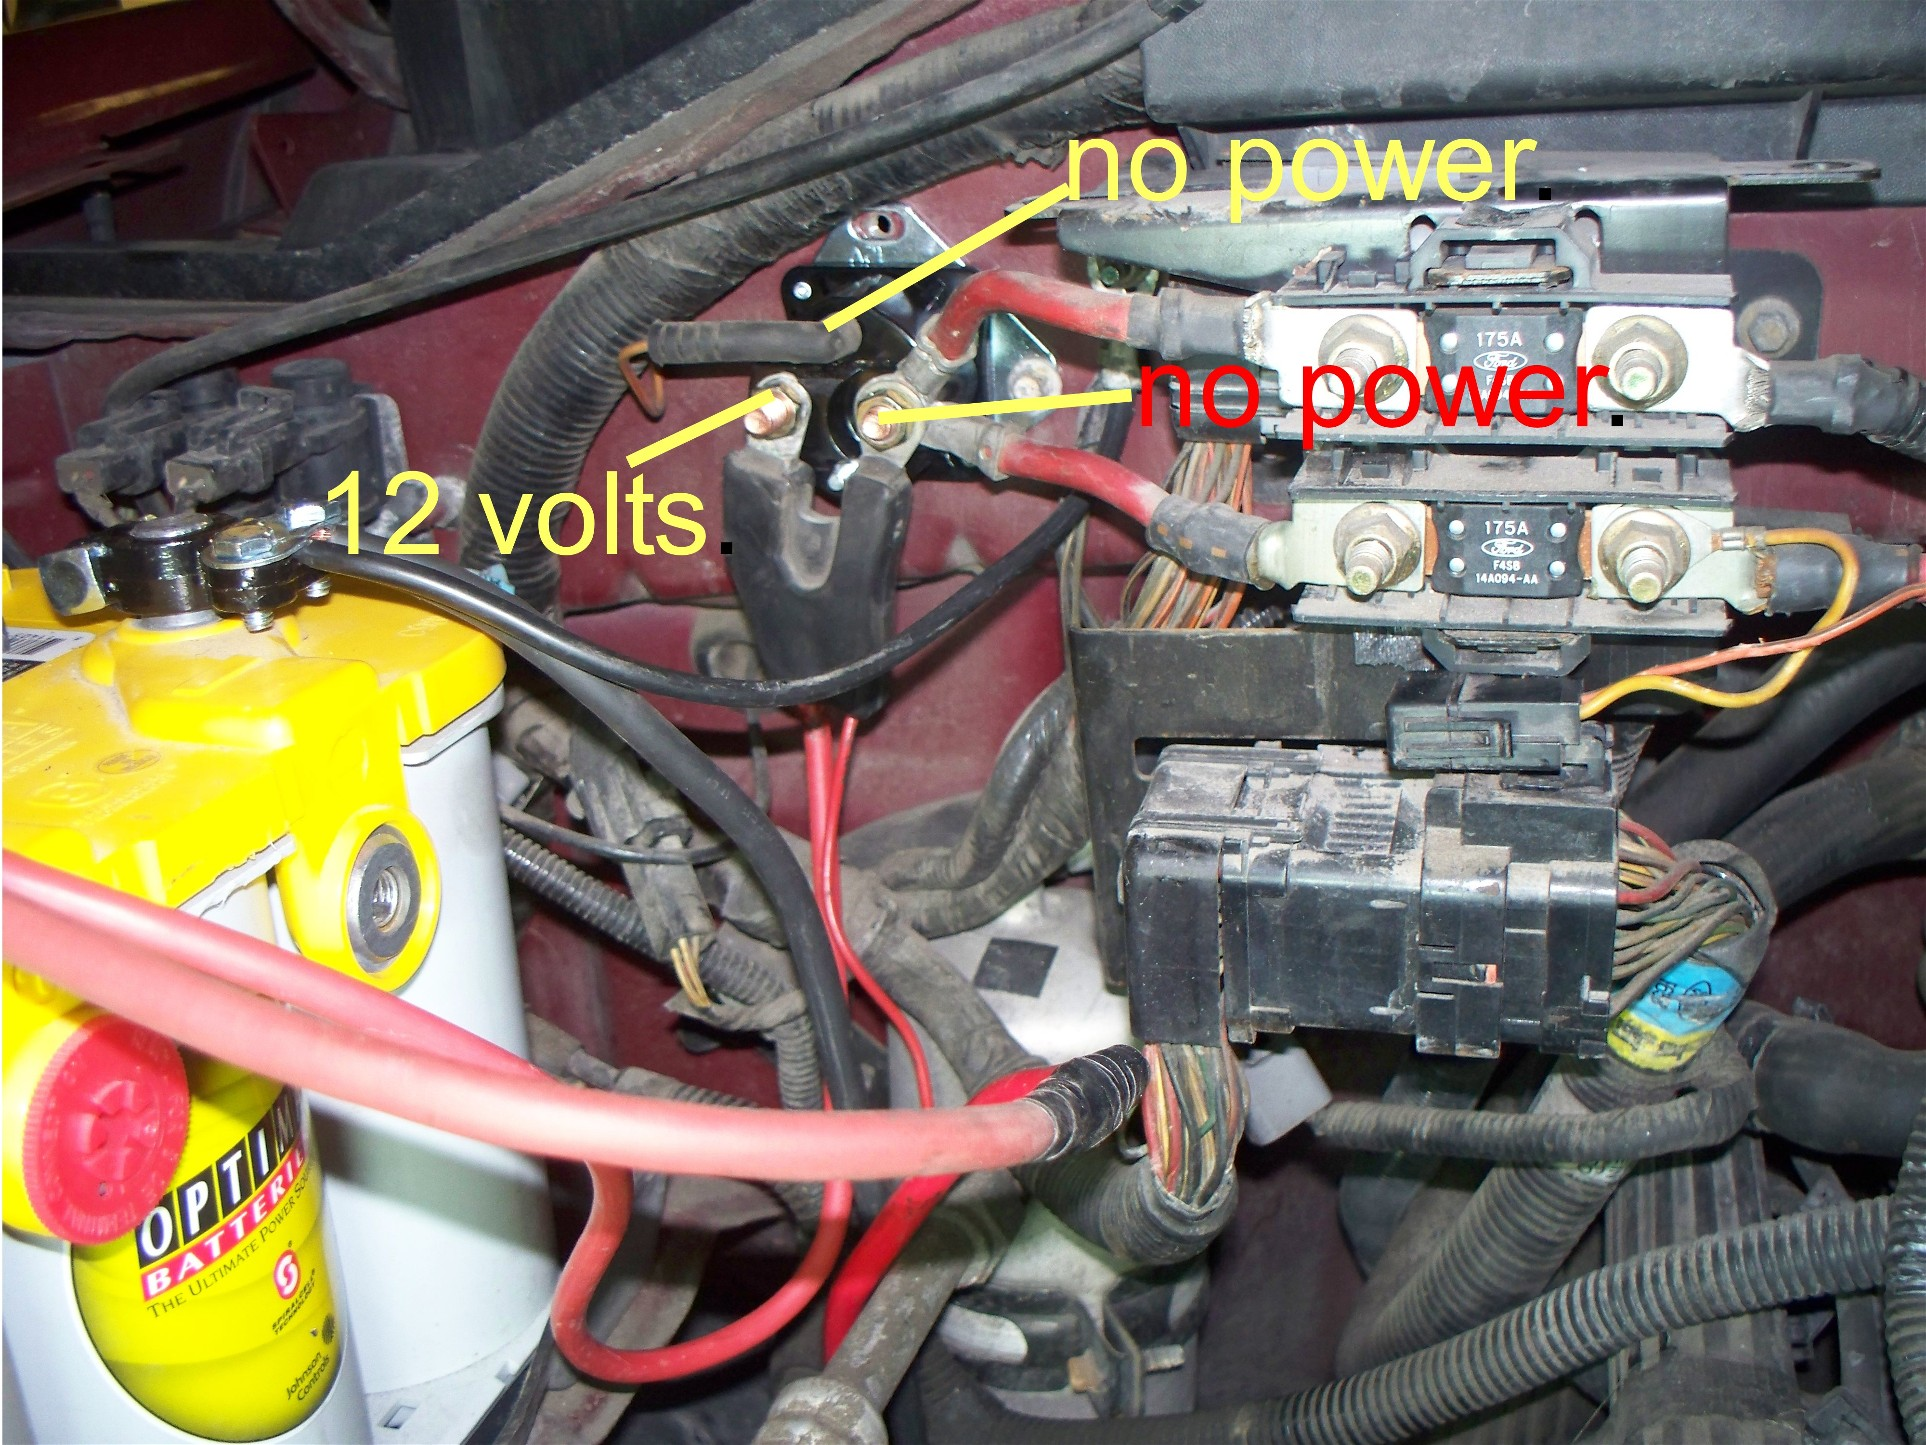 1998 Ford Expedition Engine Firewall Diagram Wiring Libraries Peterbilt 379 Starter Get Free Image About 97 F 150 Cables That Were Melted And The Mounted Solenoidonly Red One Has